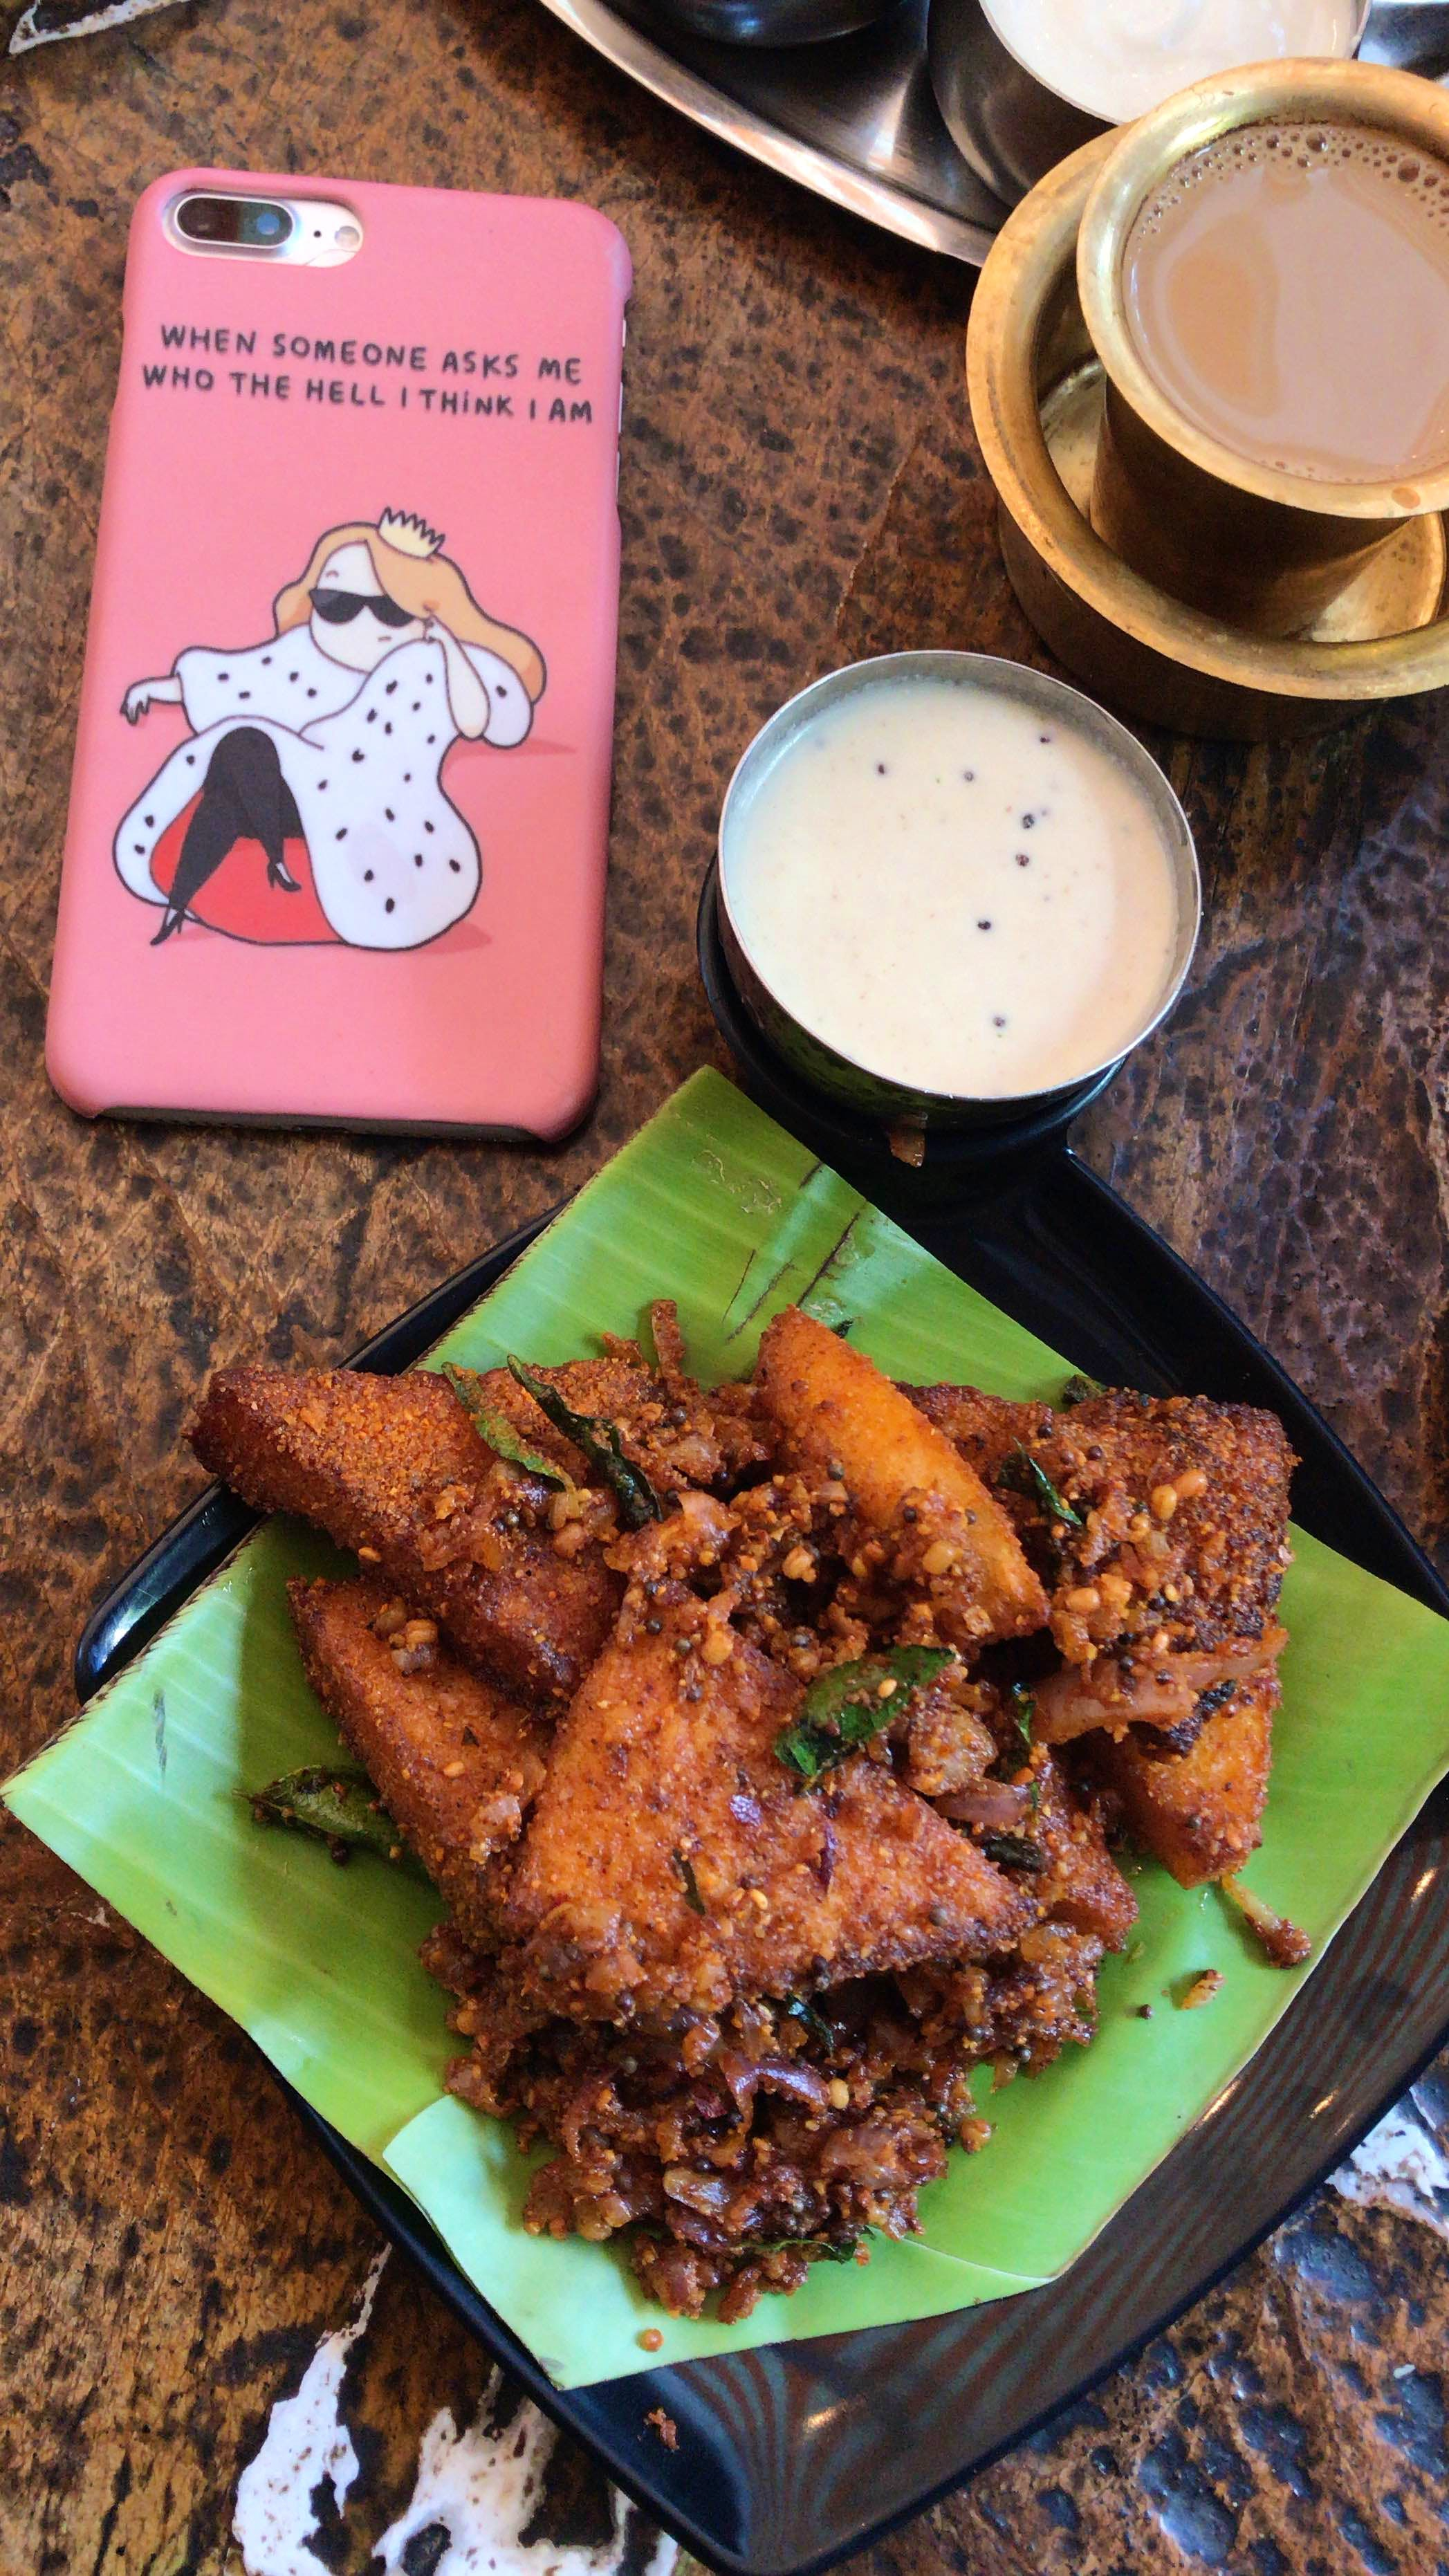 Food,Dish,Fried food,Cuisine,Ingredient,Comfort food,Fried chicken,Meal,Chicken meat,Recipe